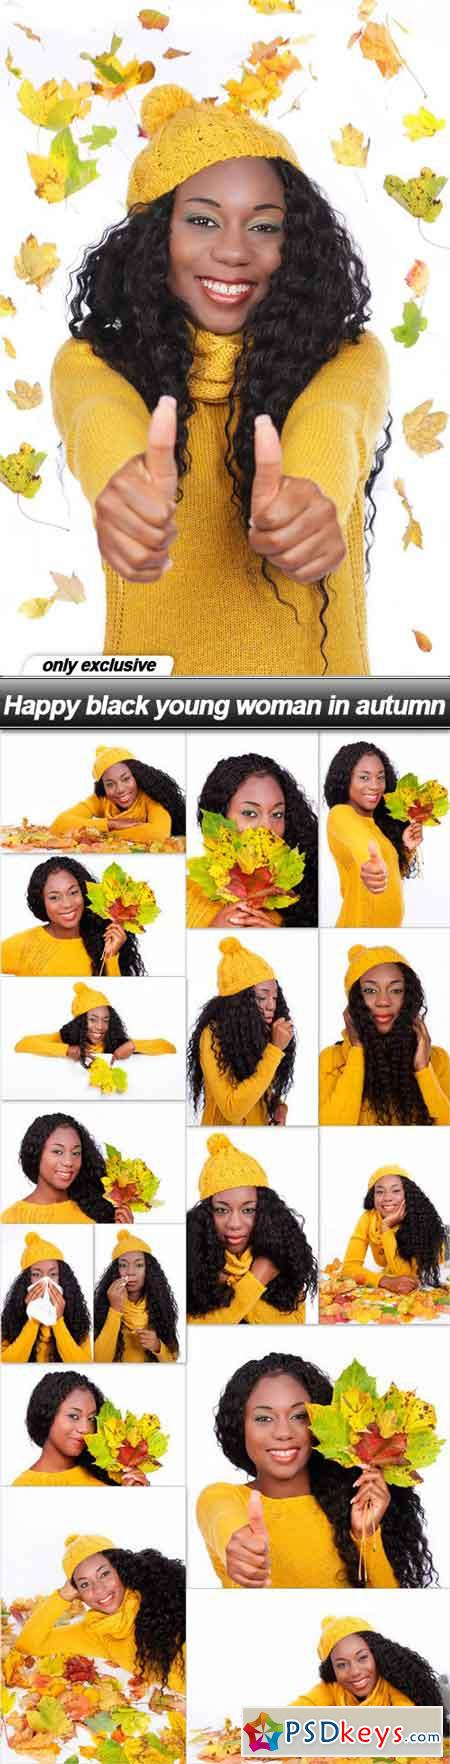 Happy black young woman in autumn - 17 UHQ JPEG